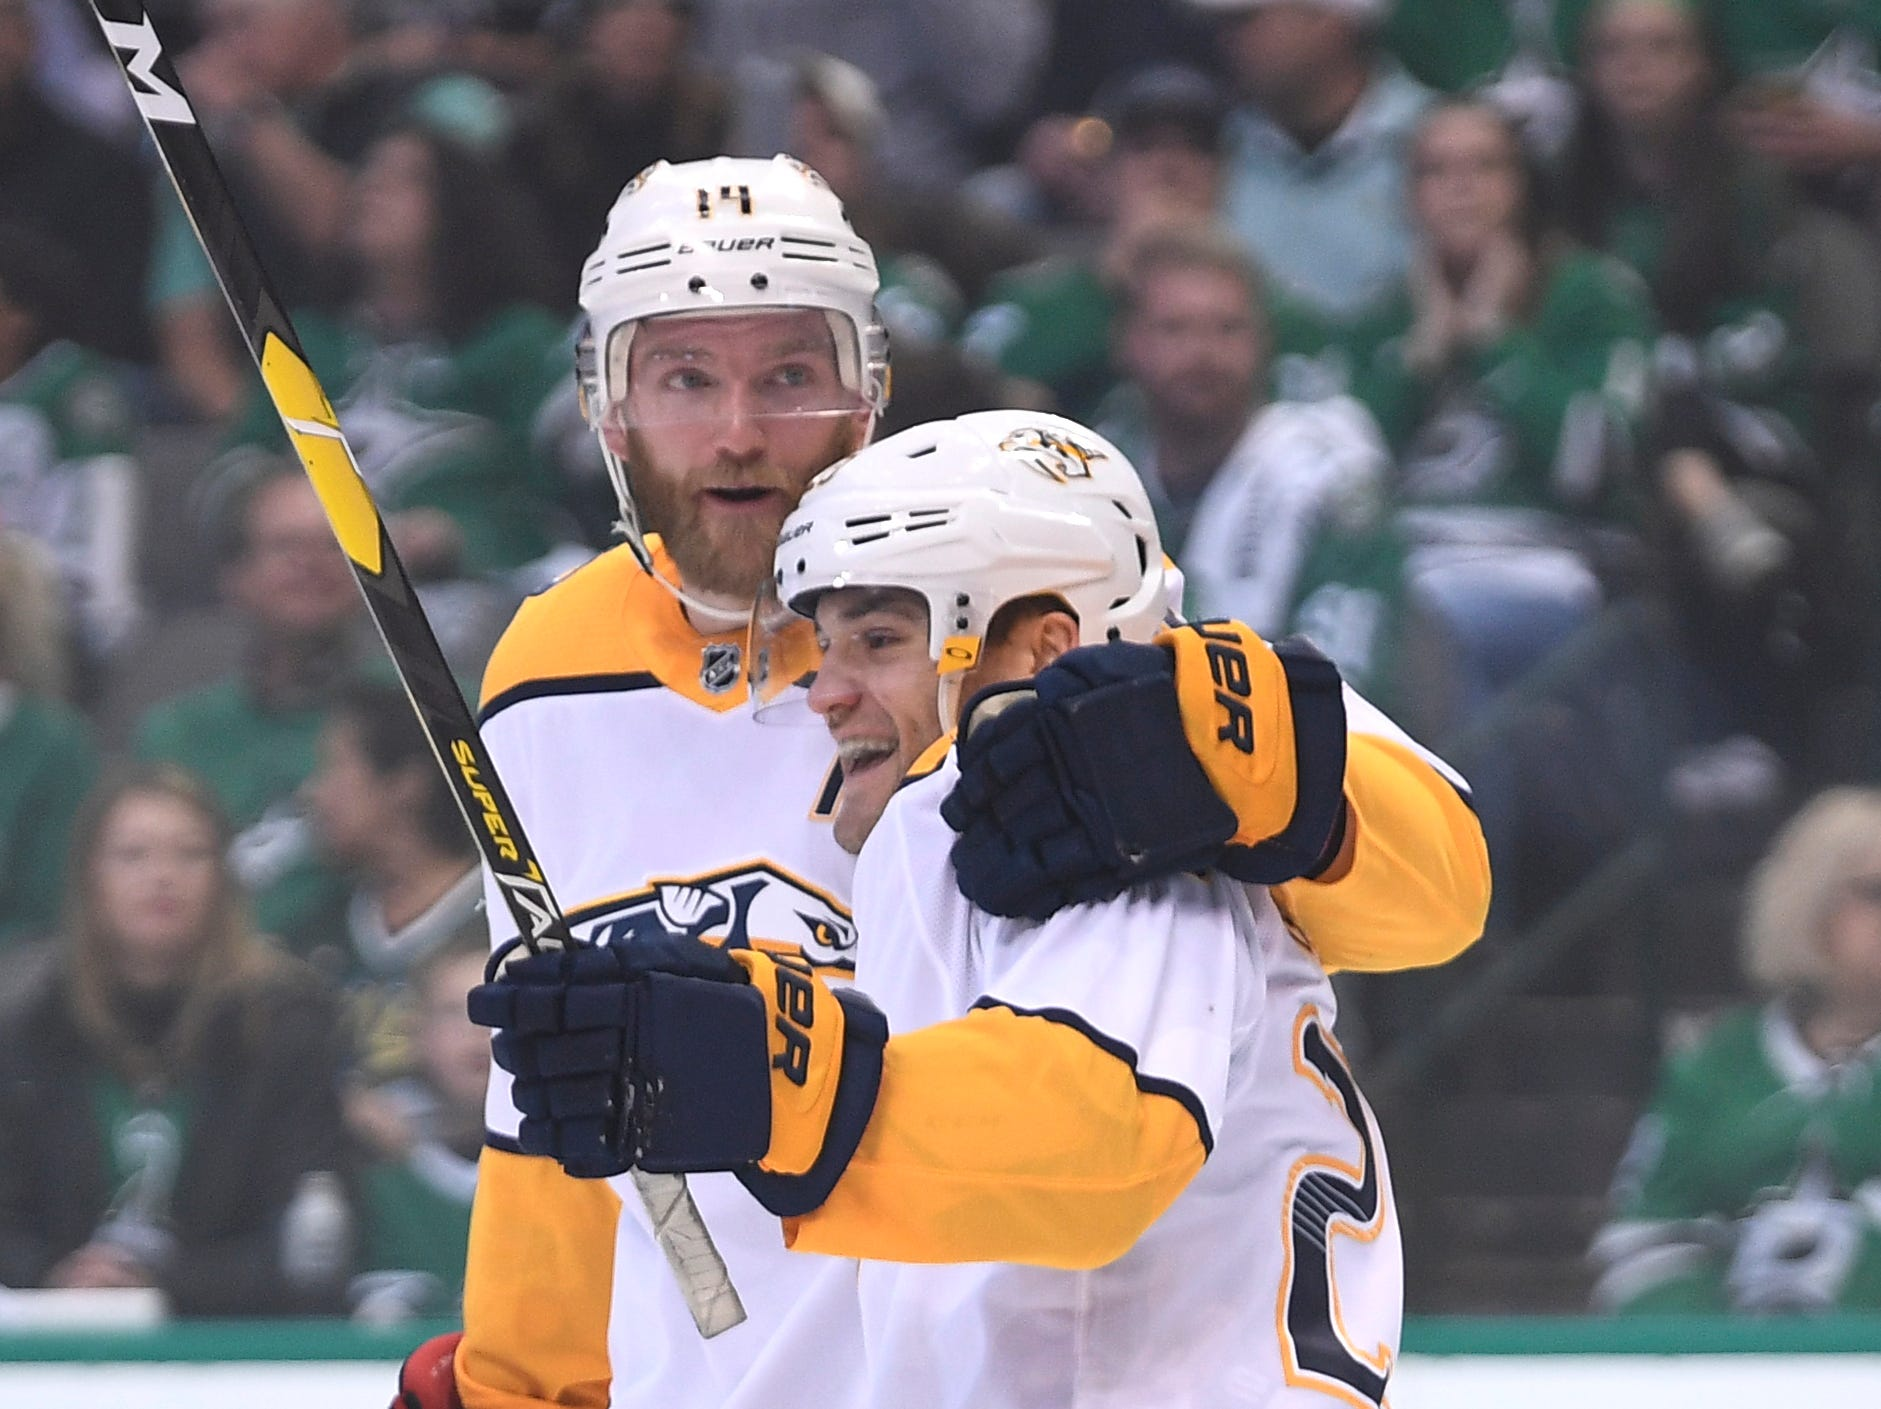 Nashville Predators center Rocco Grimaldi (23) celebrates his goal with defenseman Mattias Ekholm (14) during the second period of the divisional semifinal game at the American Airlines Center in Dallas, Texas., Monday, April 15, 2019.